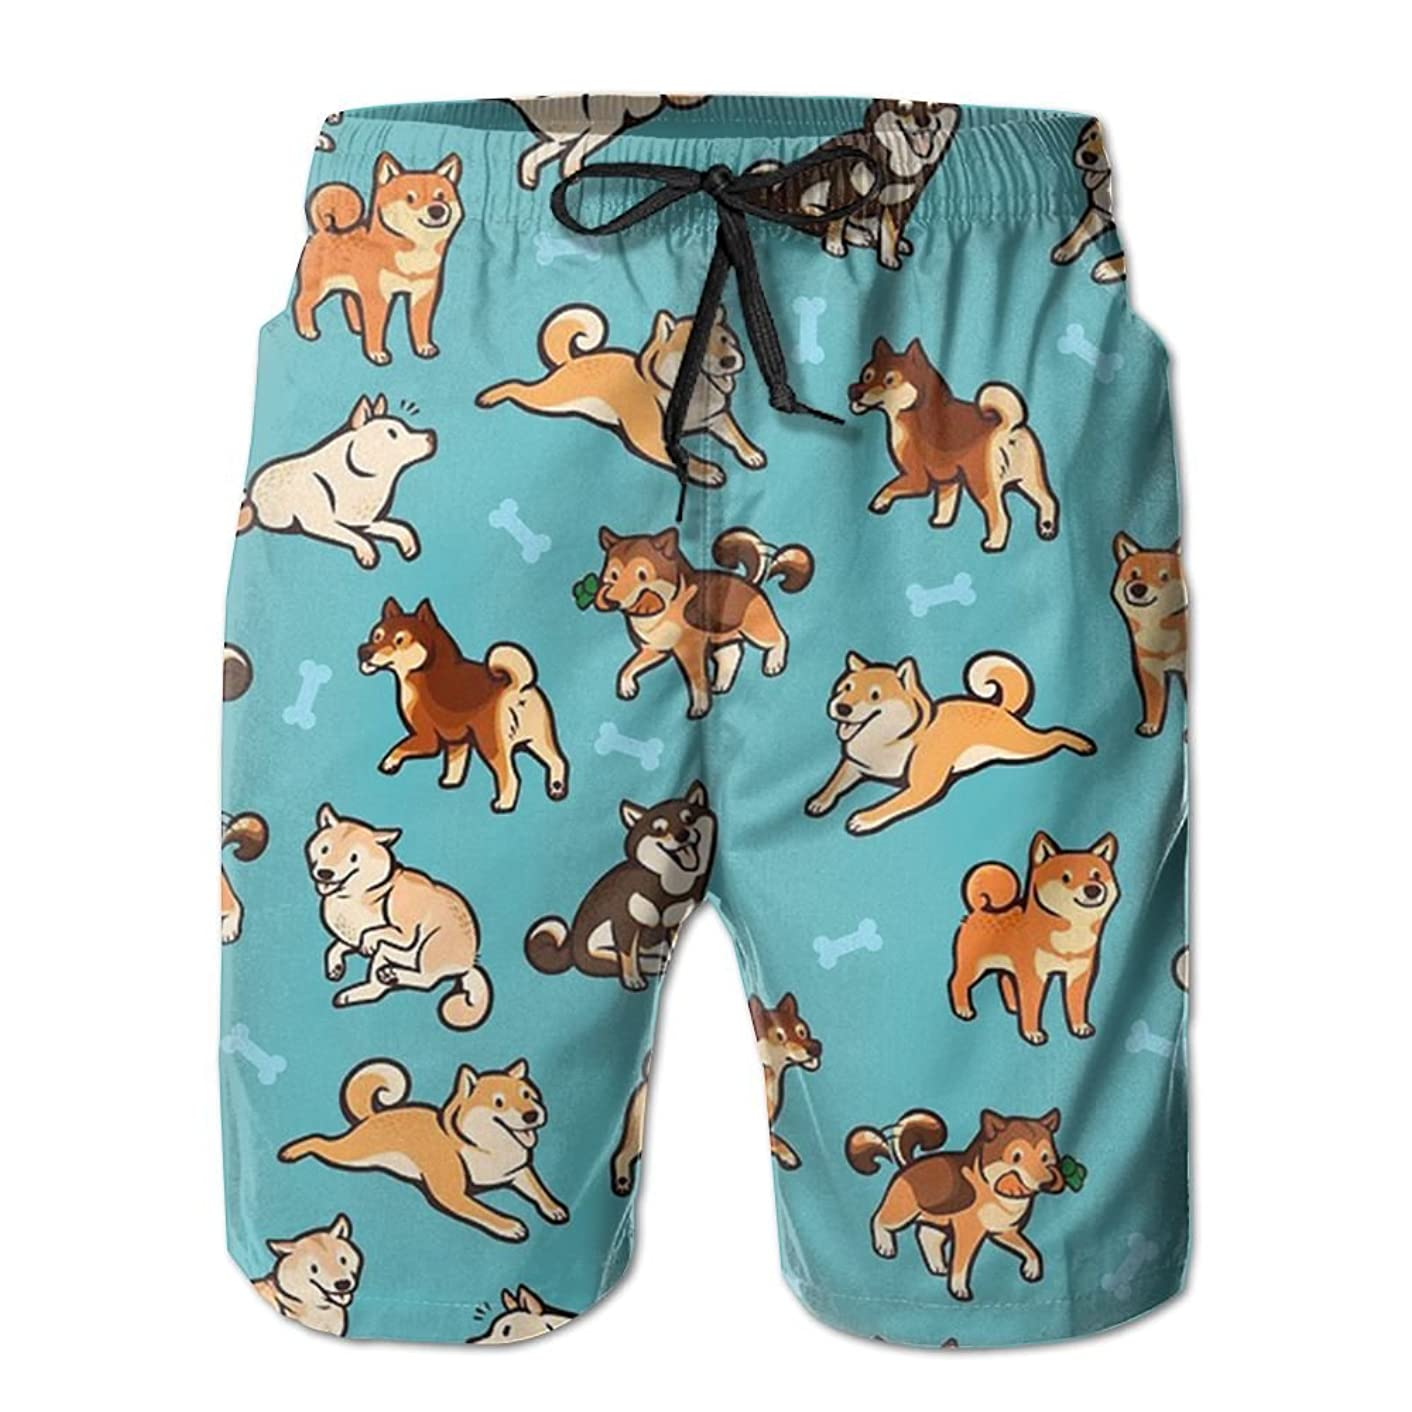 AP.Roon Men's Boy's Novelty Quick Dry Swim Trunk Japanese Akita Sports Beachwear With Mesh Lining